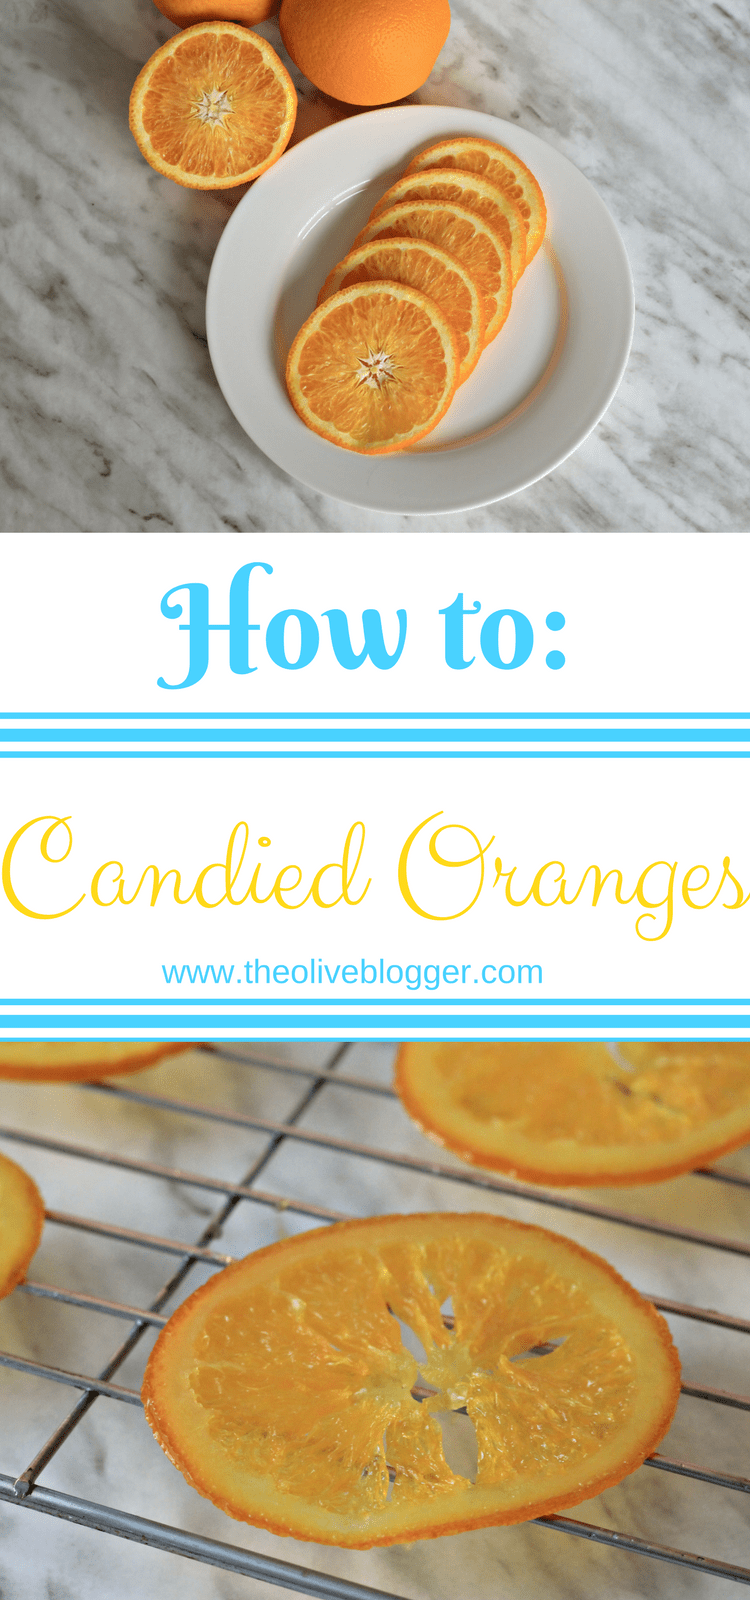 Candied Oranges - a simple how-to for candying citrus fruit! Perfect for topping cakes and desserts, or to enjoy on their own. #CandiedOranges #CandiedFruit #CandiedCitrus